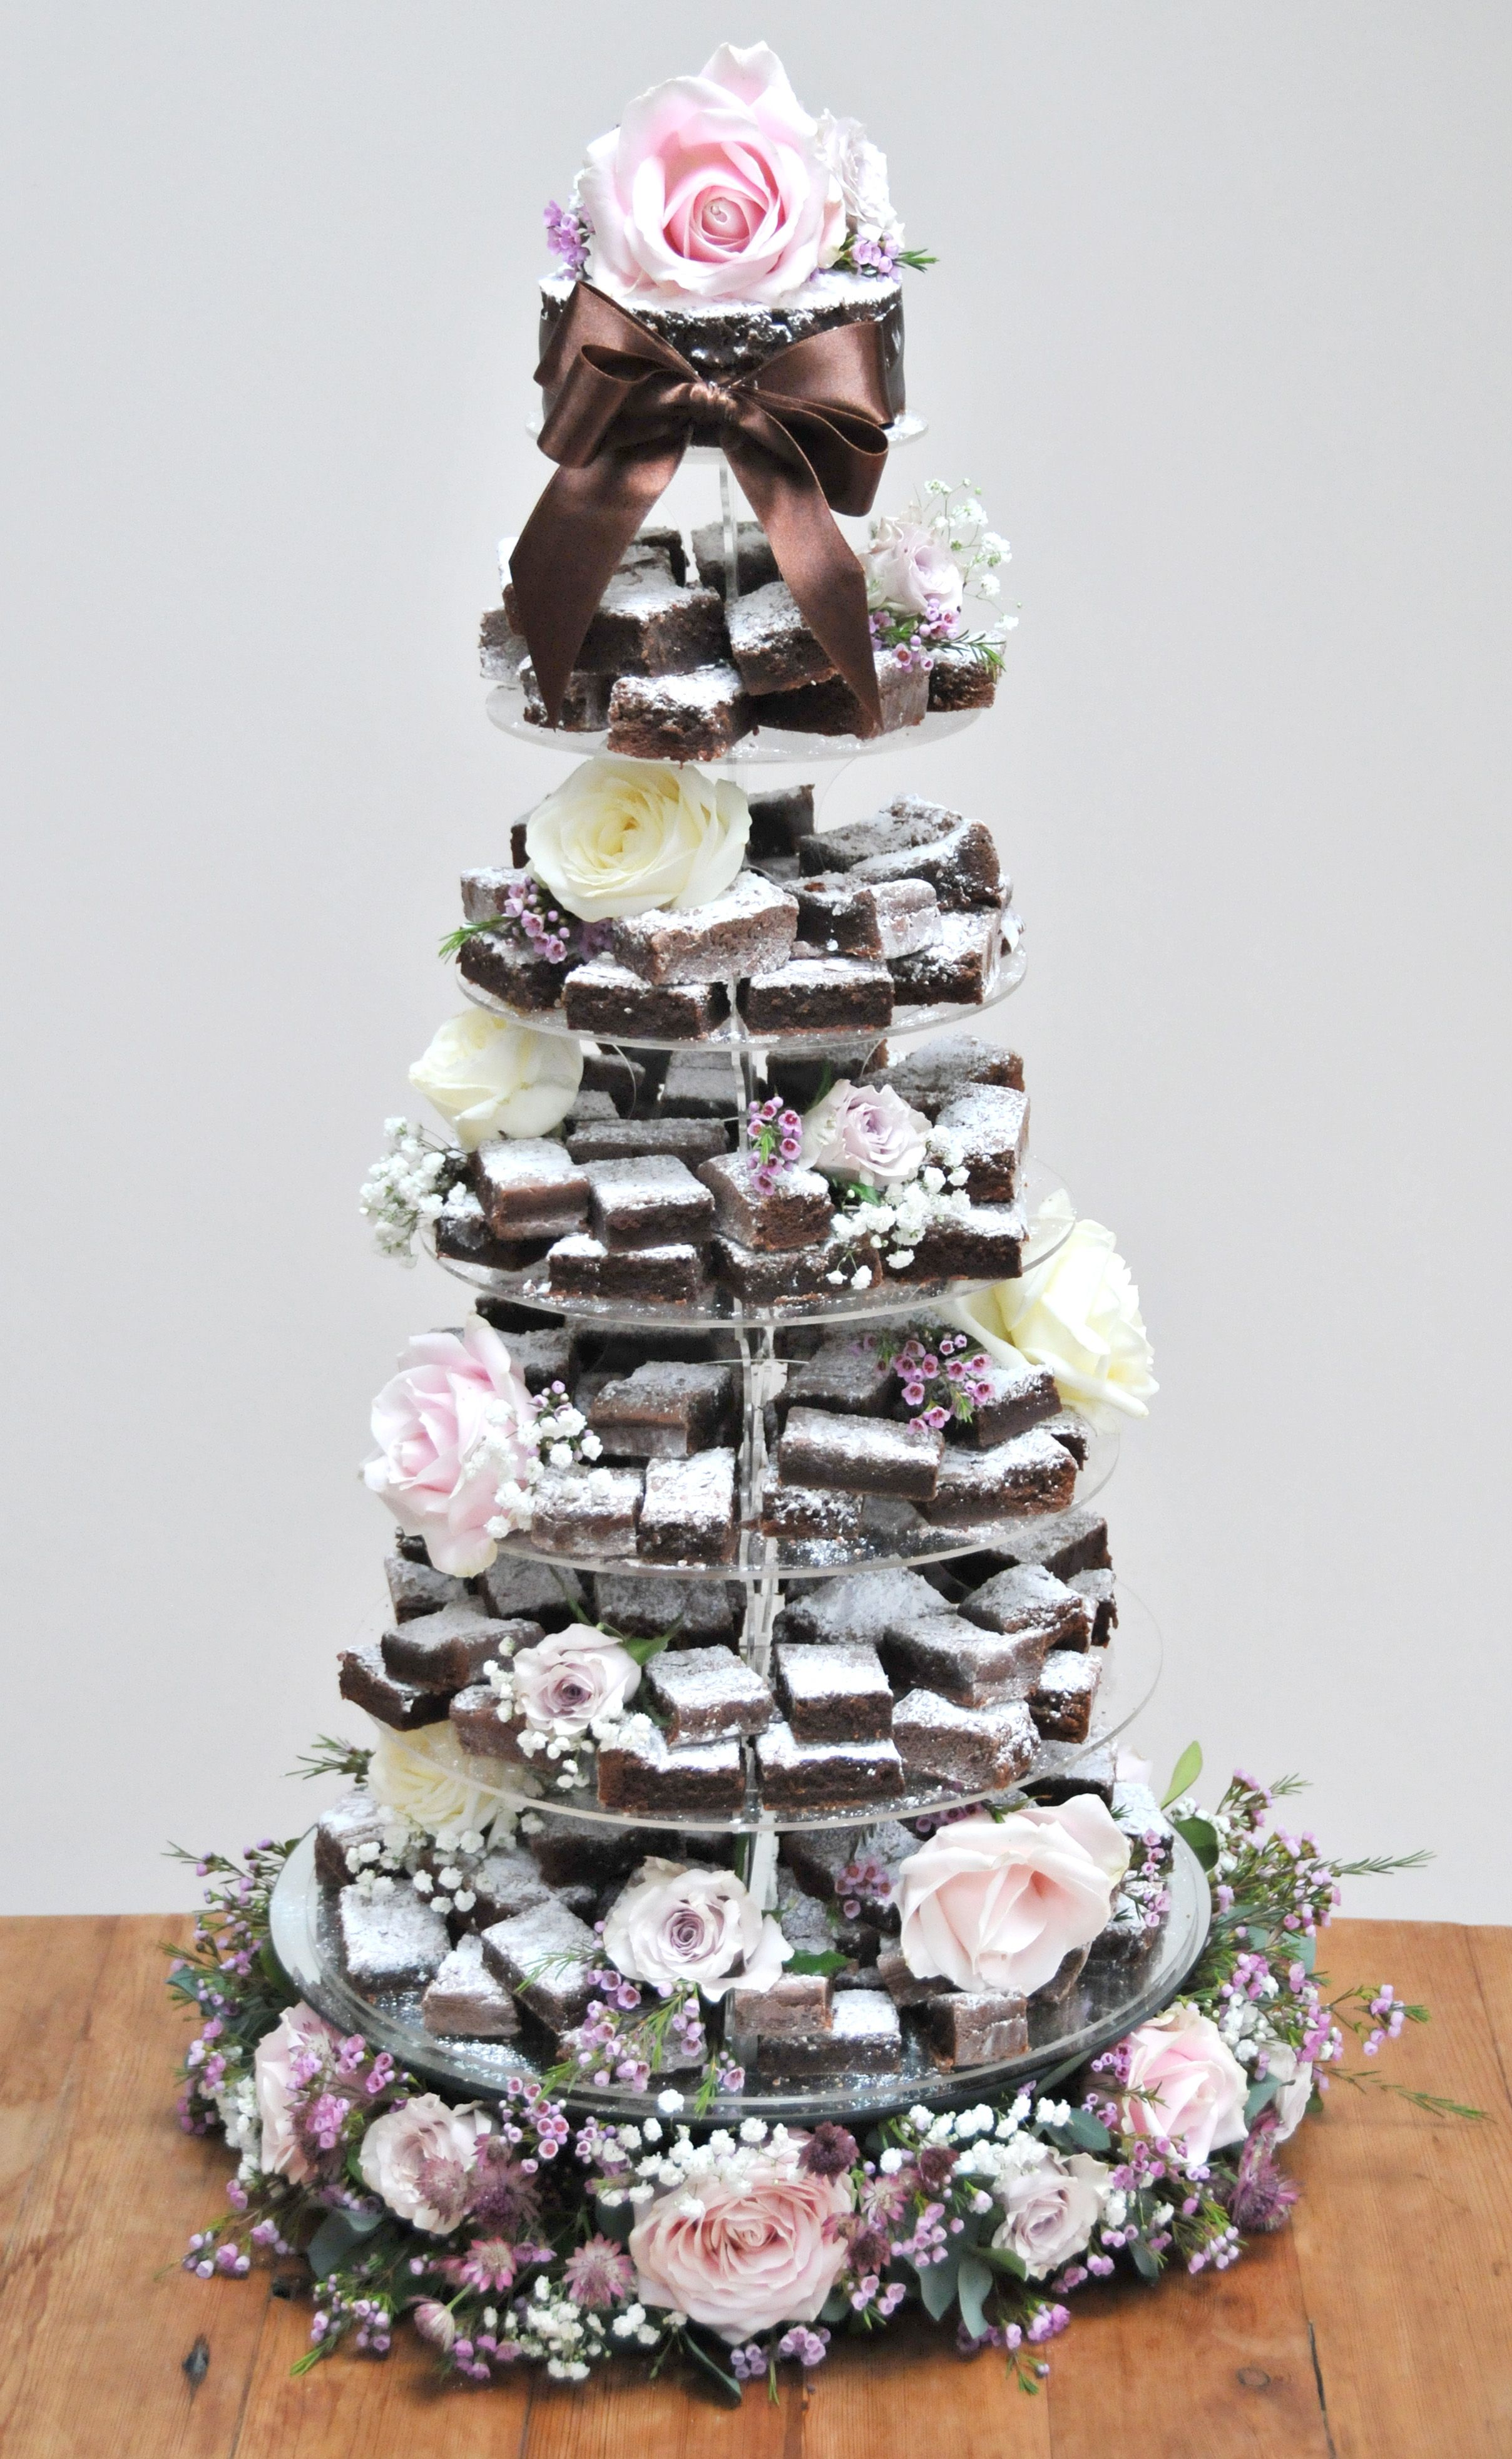 192 brownies, flowered base with cutting cake